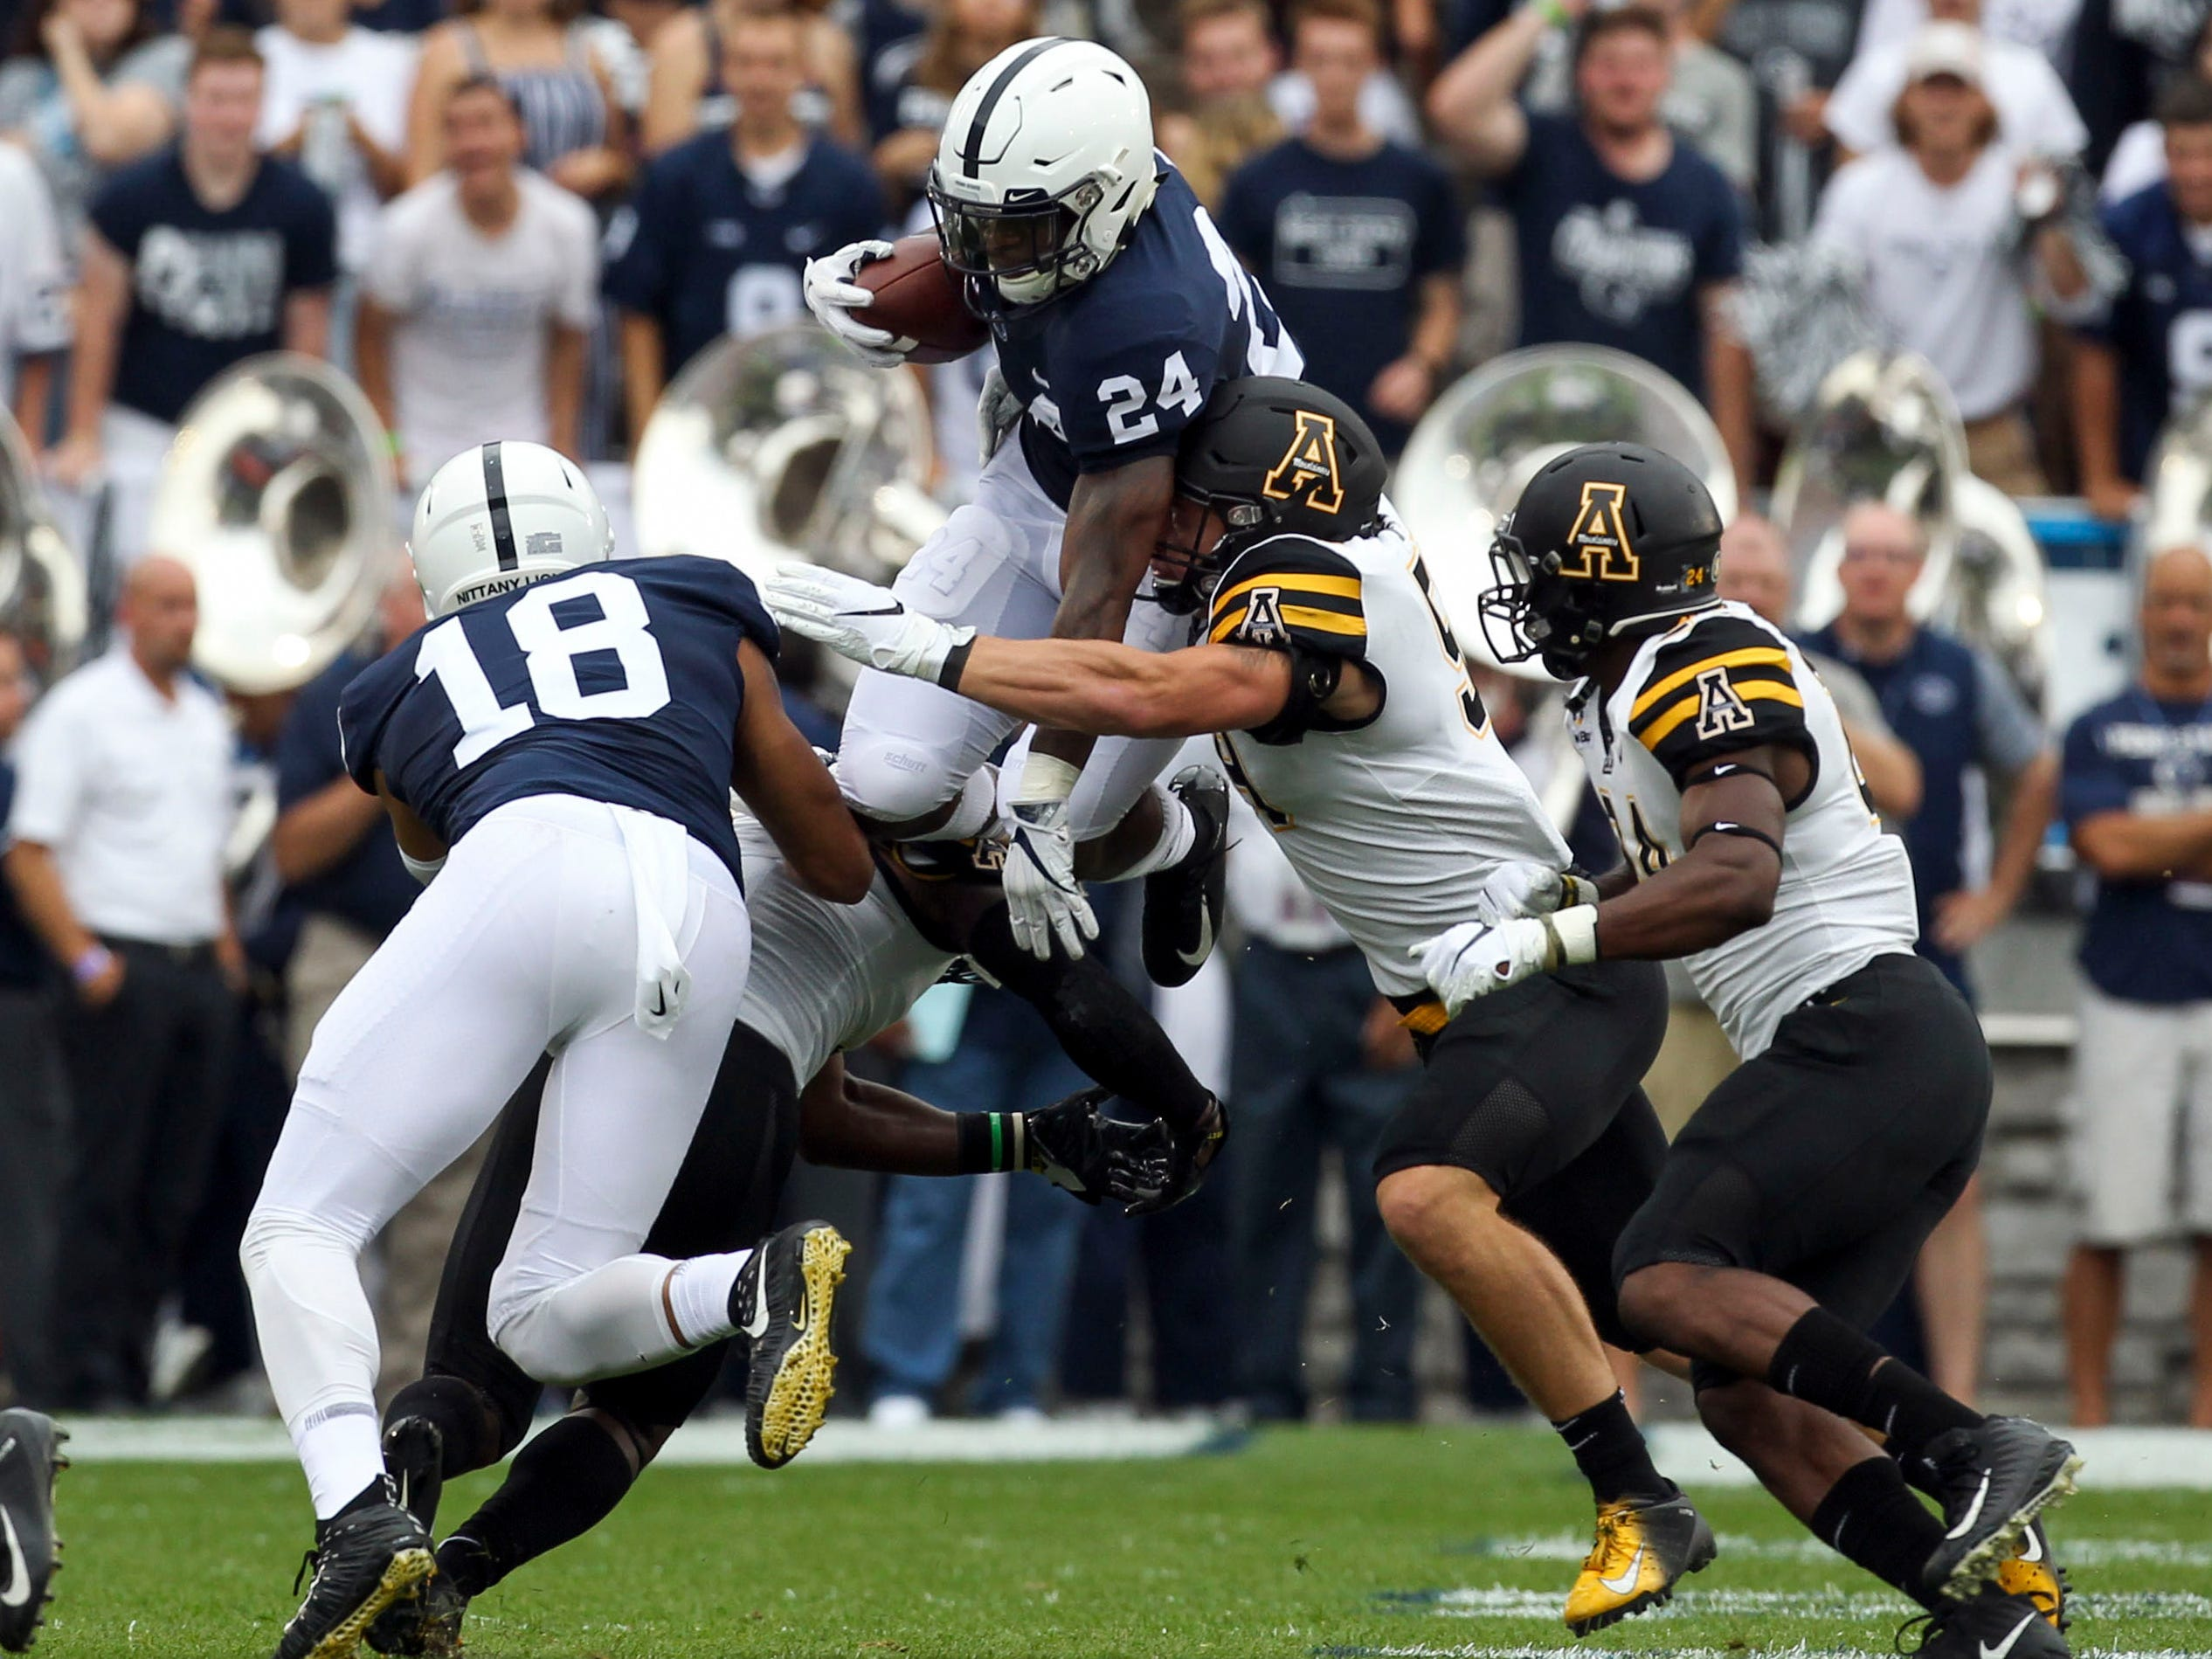 Penn State running back Miles Sanders  jumps over a defender during the first quarter against Appalachian State.